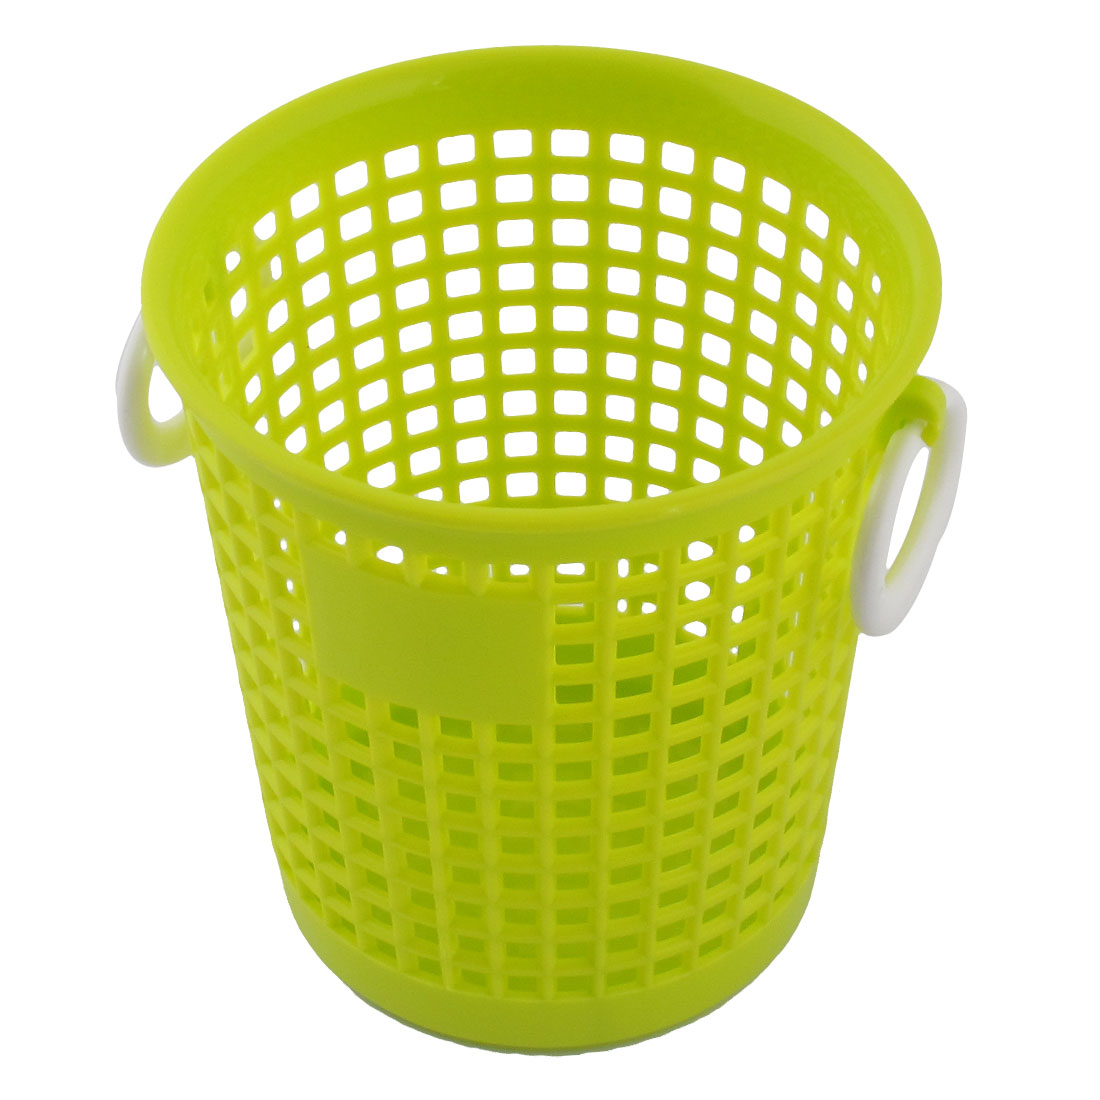 Household Plastic Cylindrical Shape Storage Sundries Organizer Basket Box Yellow Green